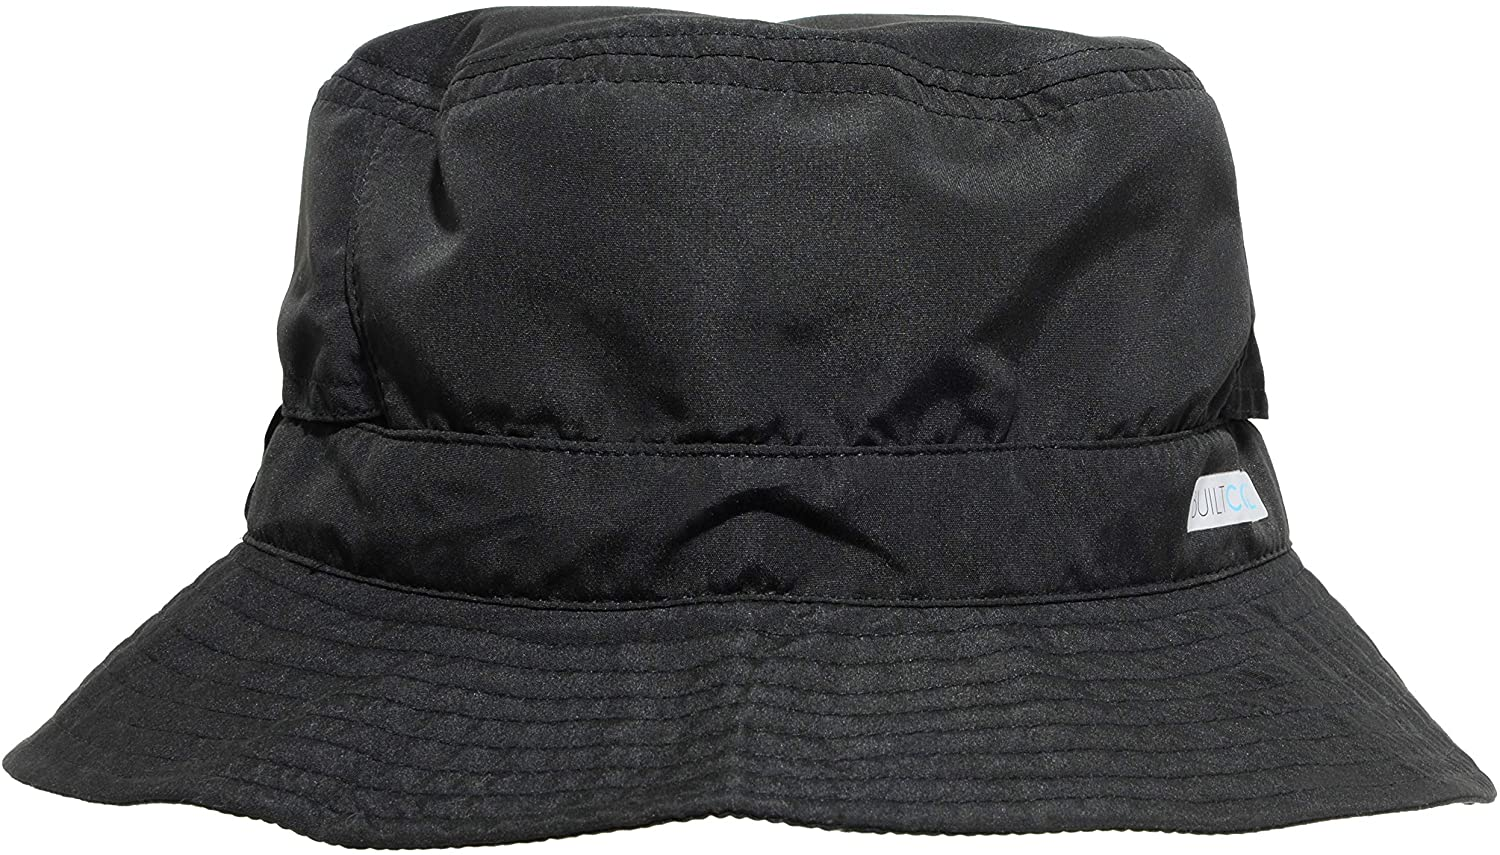 BUILTCOOL Adult Cooling Bucket Hat - Boonie Hat, Large-X-Large